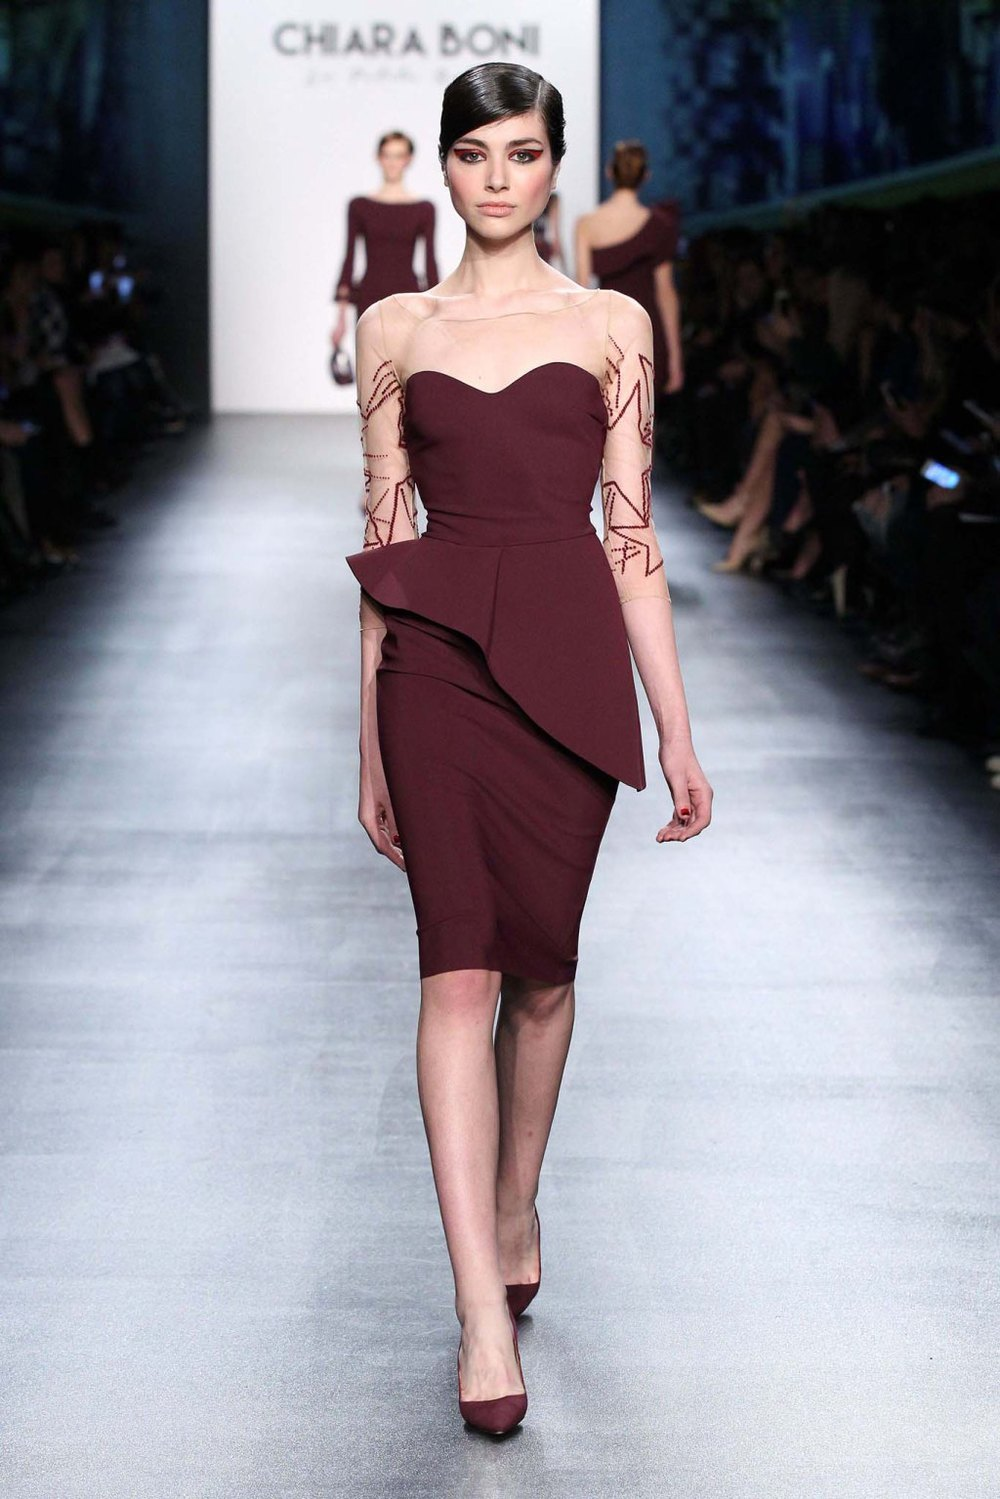 Chiara Boni The Most Popular Dress In America: NYFW Chiara Boni Fashion Show Fall/Winter 2016